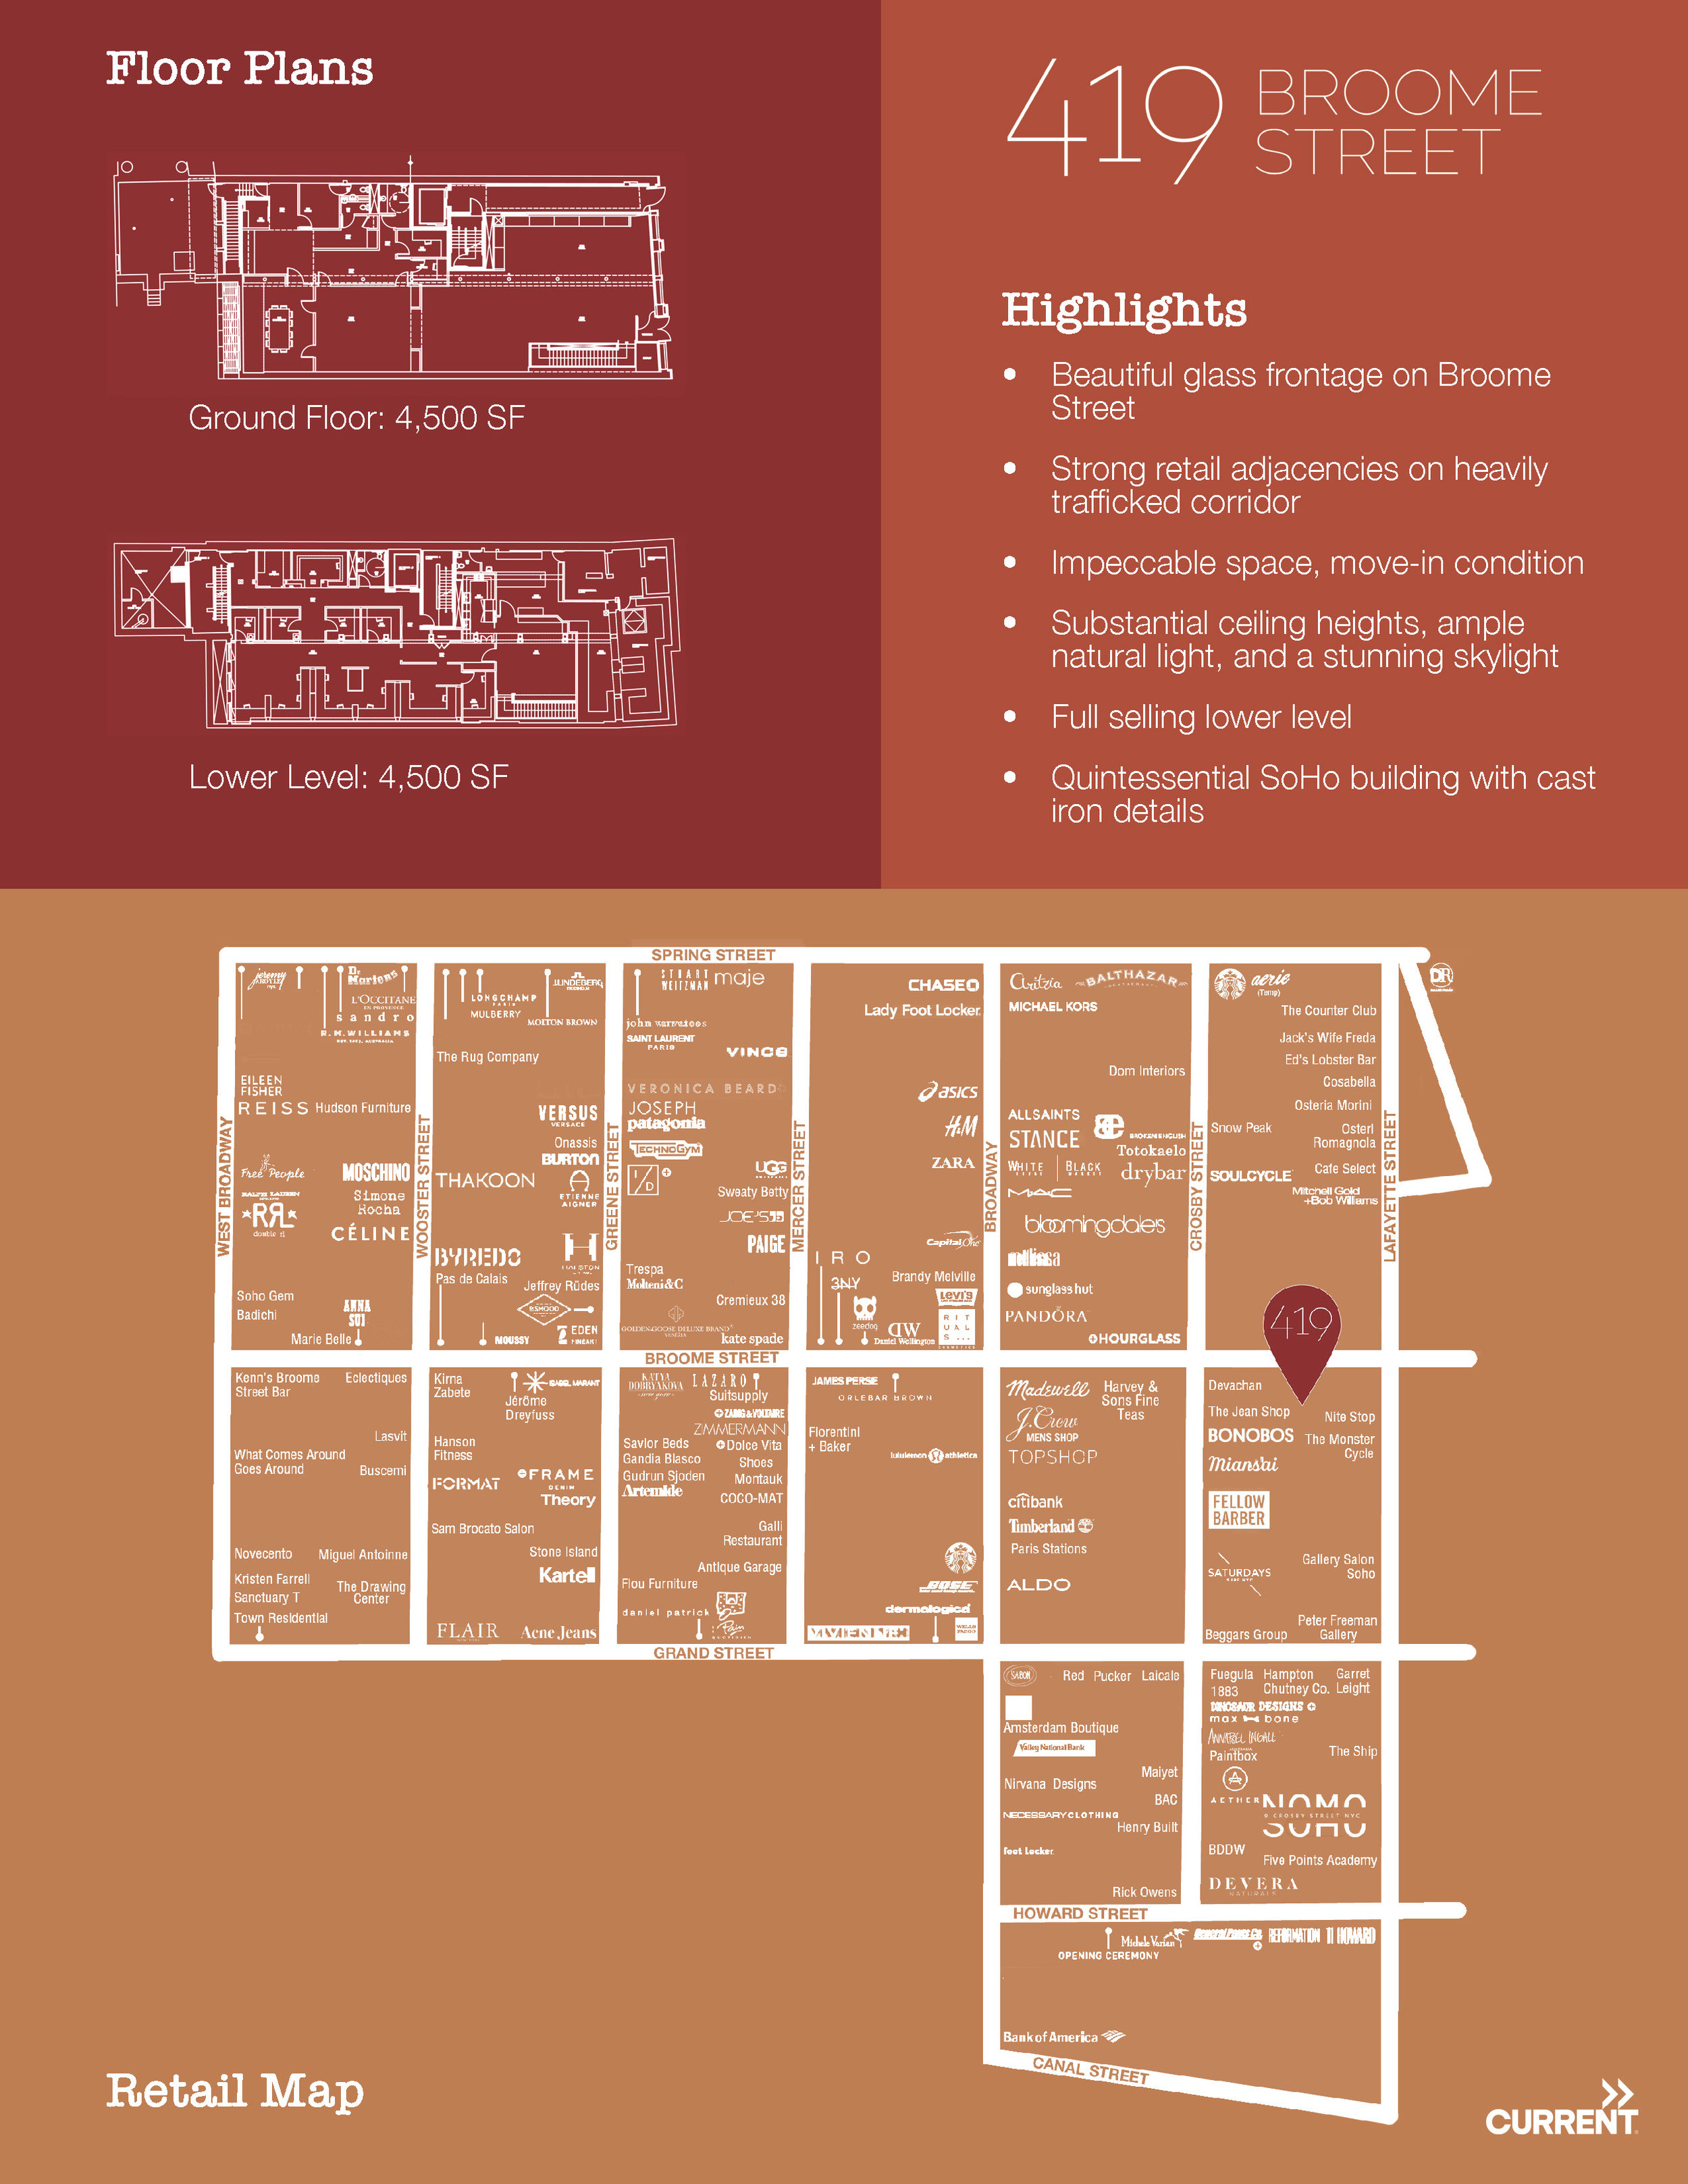 419 Broome Street Current Brochure_Page_4.jpg